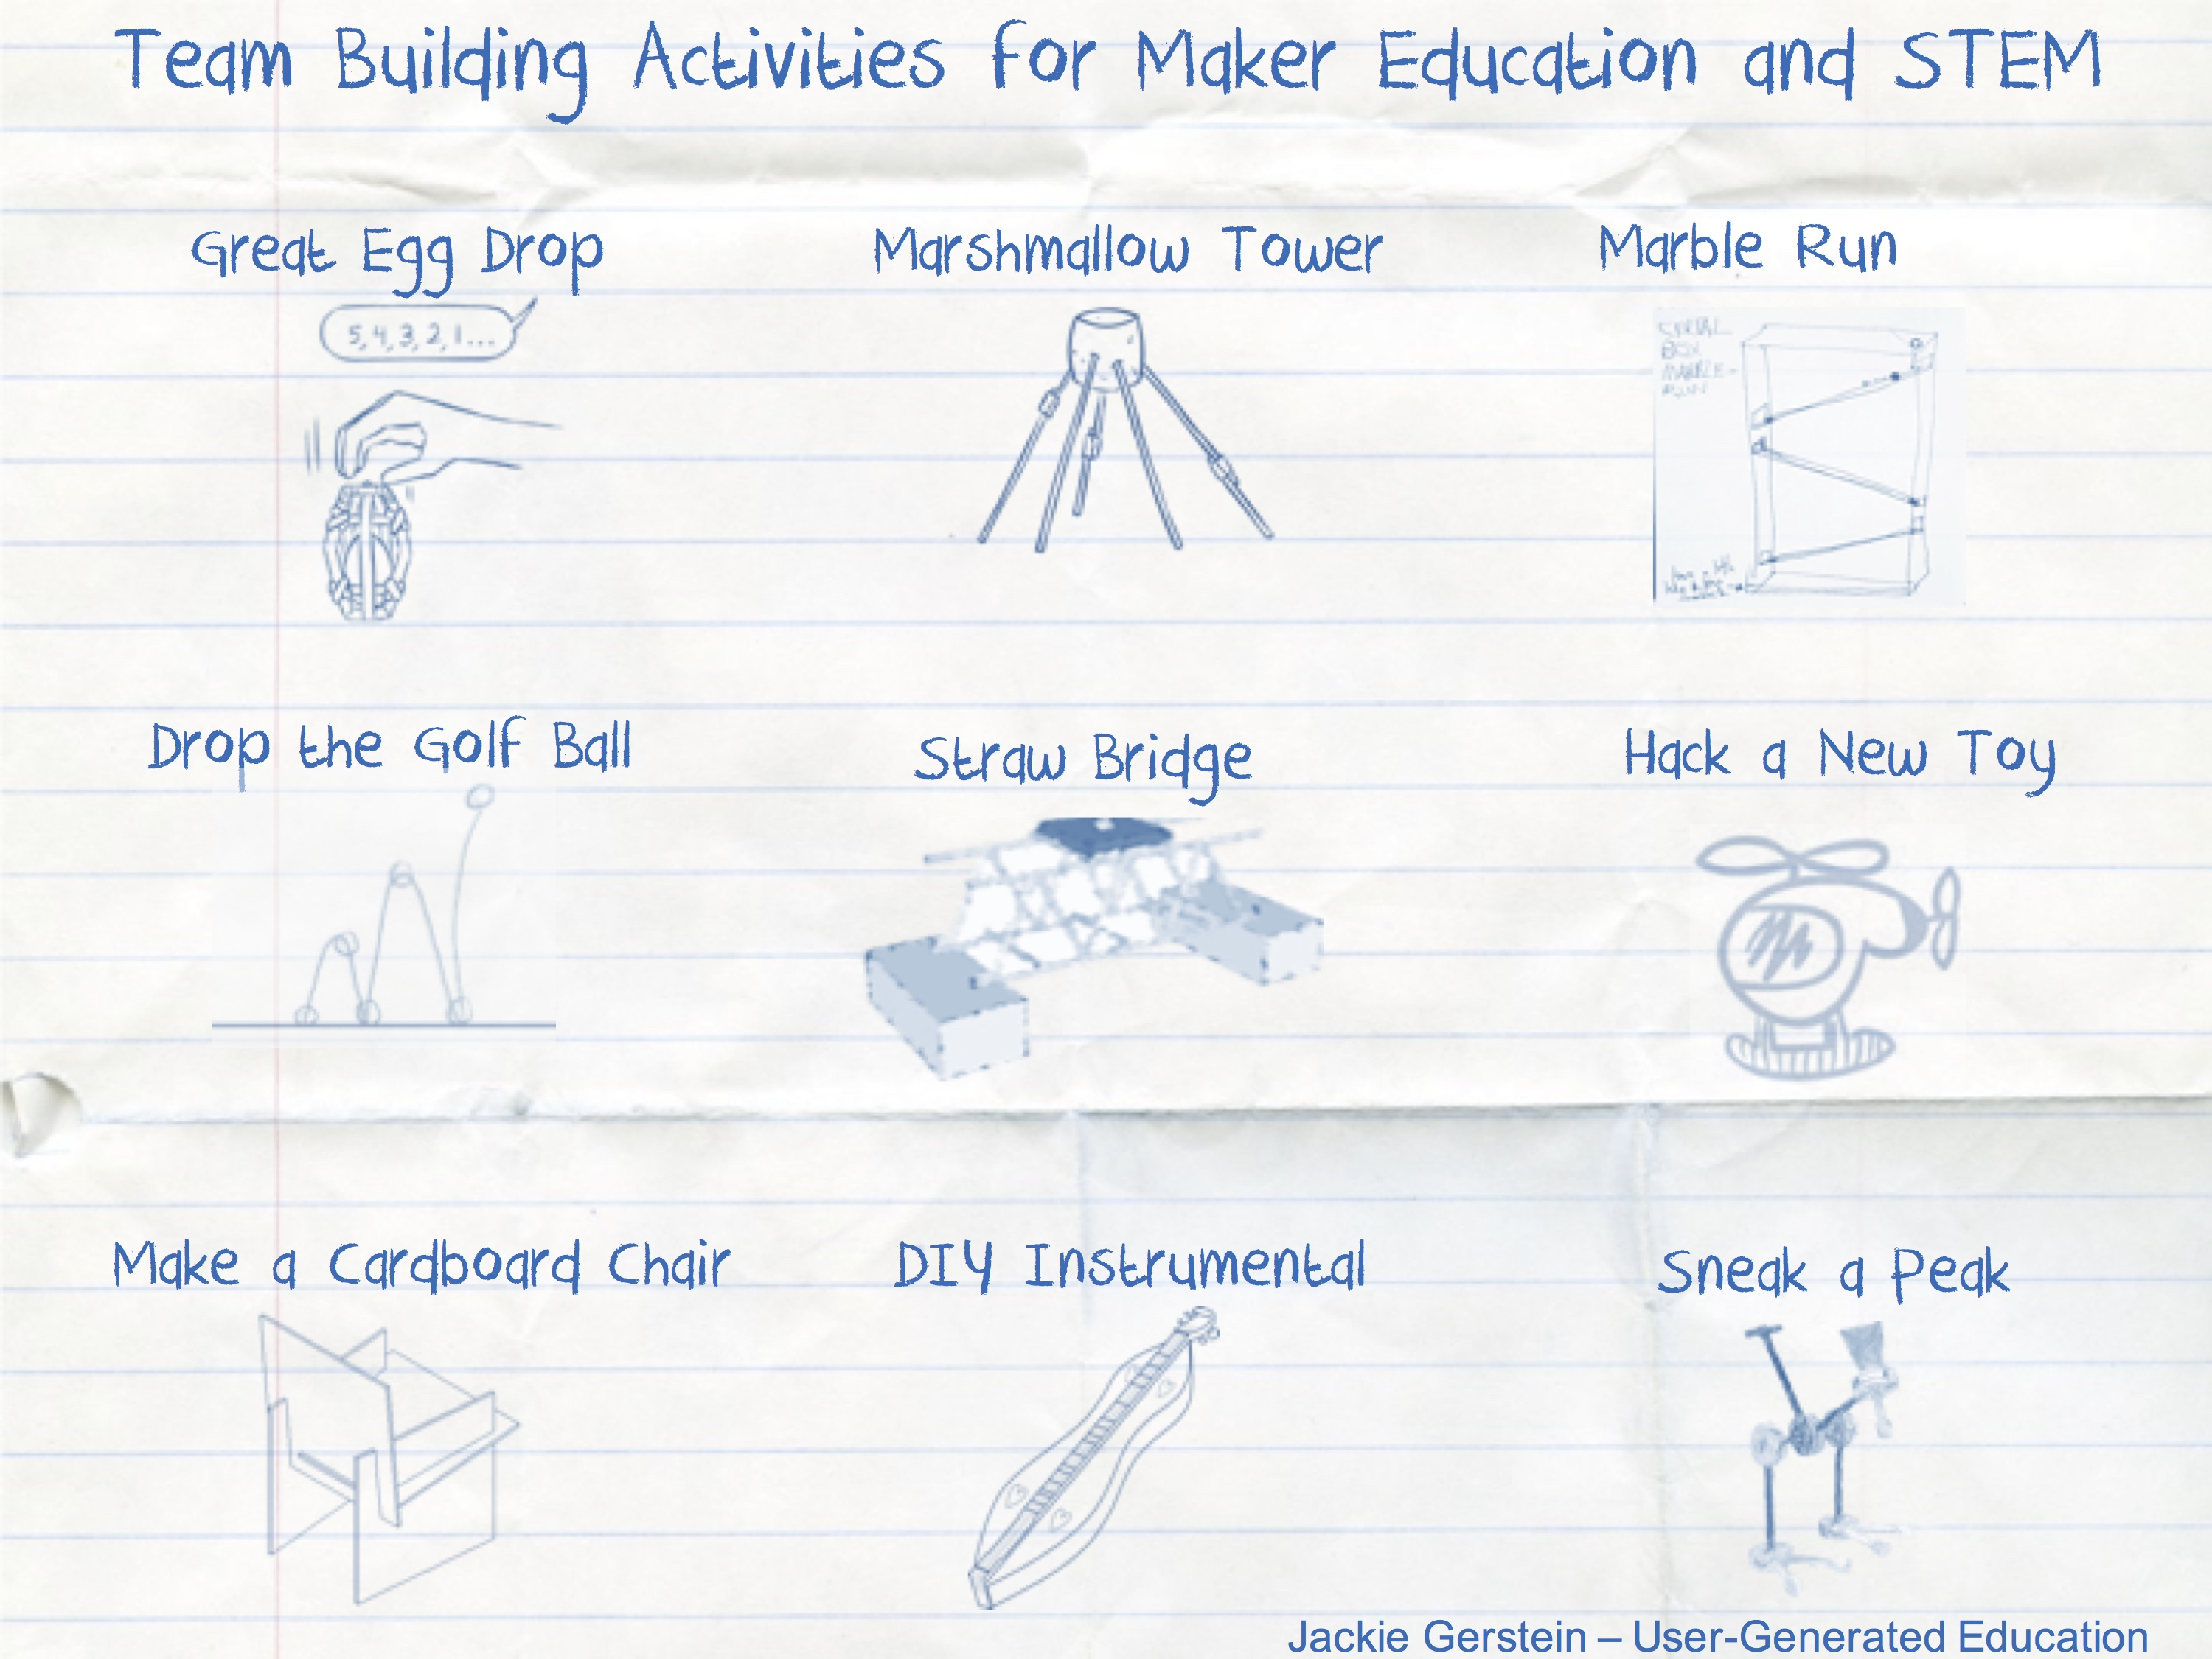 Team Building Activities That Support Maker Education Stem And Steam User Generated Education